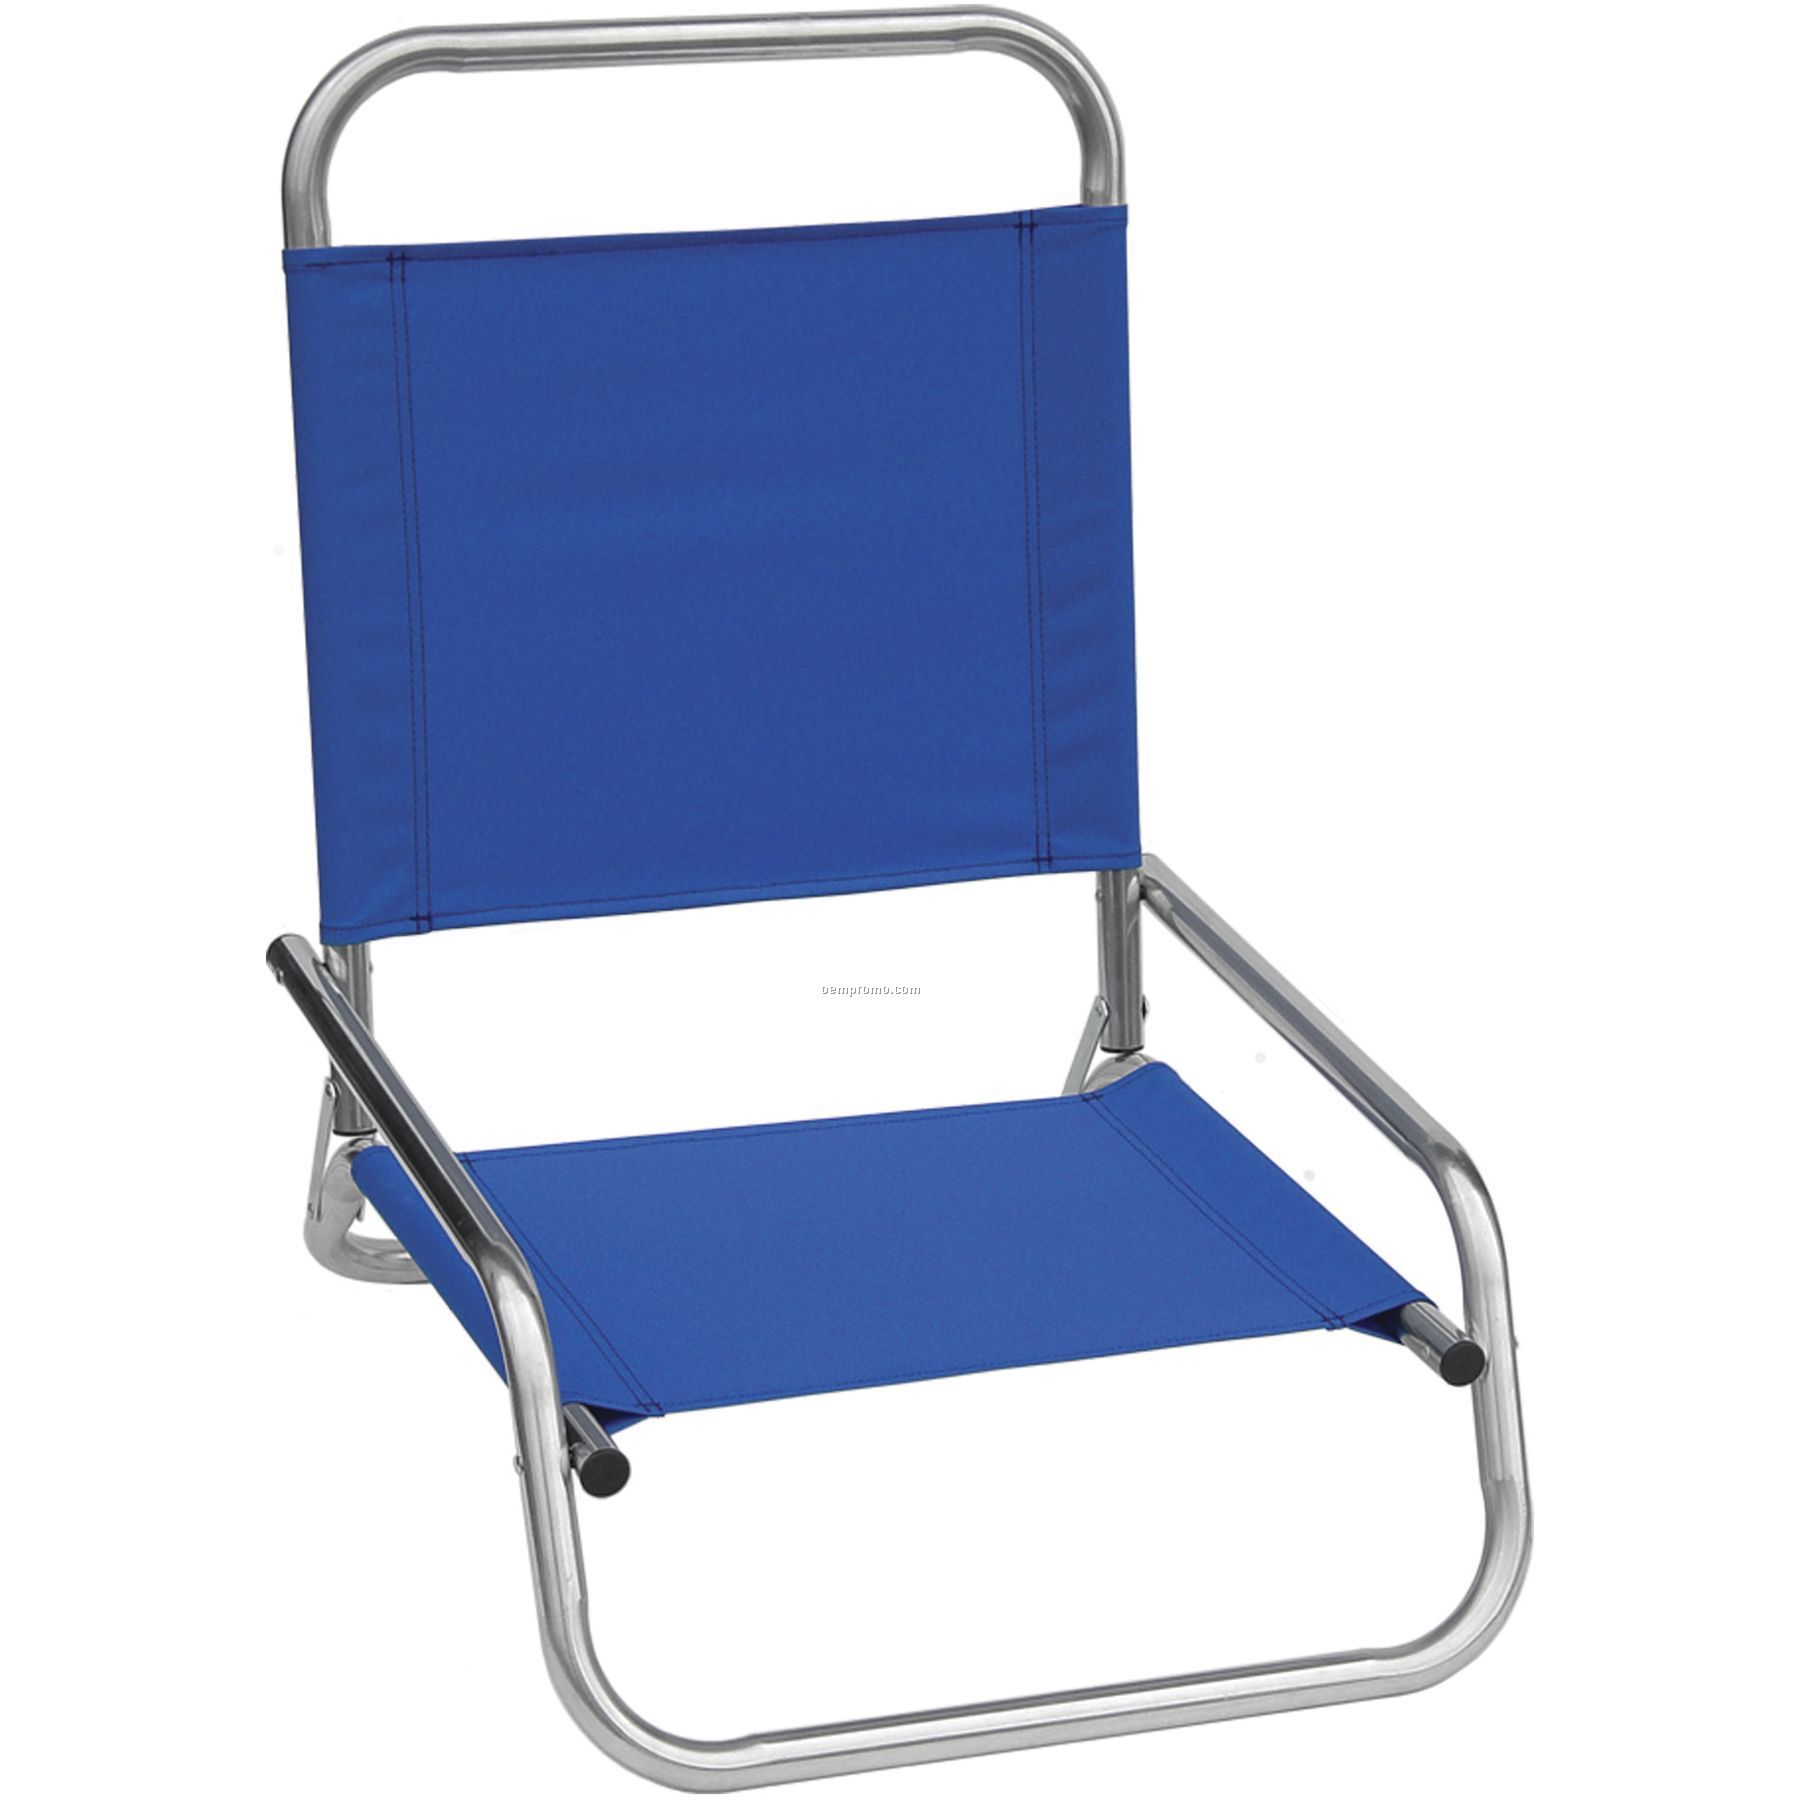 Us Made Deluxe High Back Wide Beach Chair With A Full Color Digital Imprint